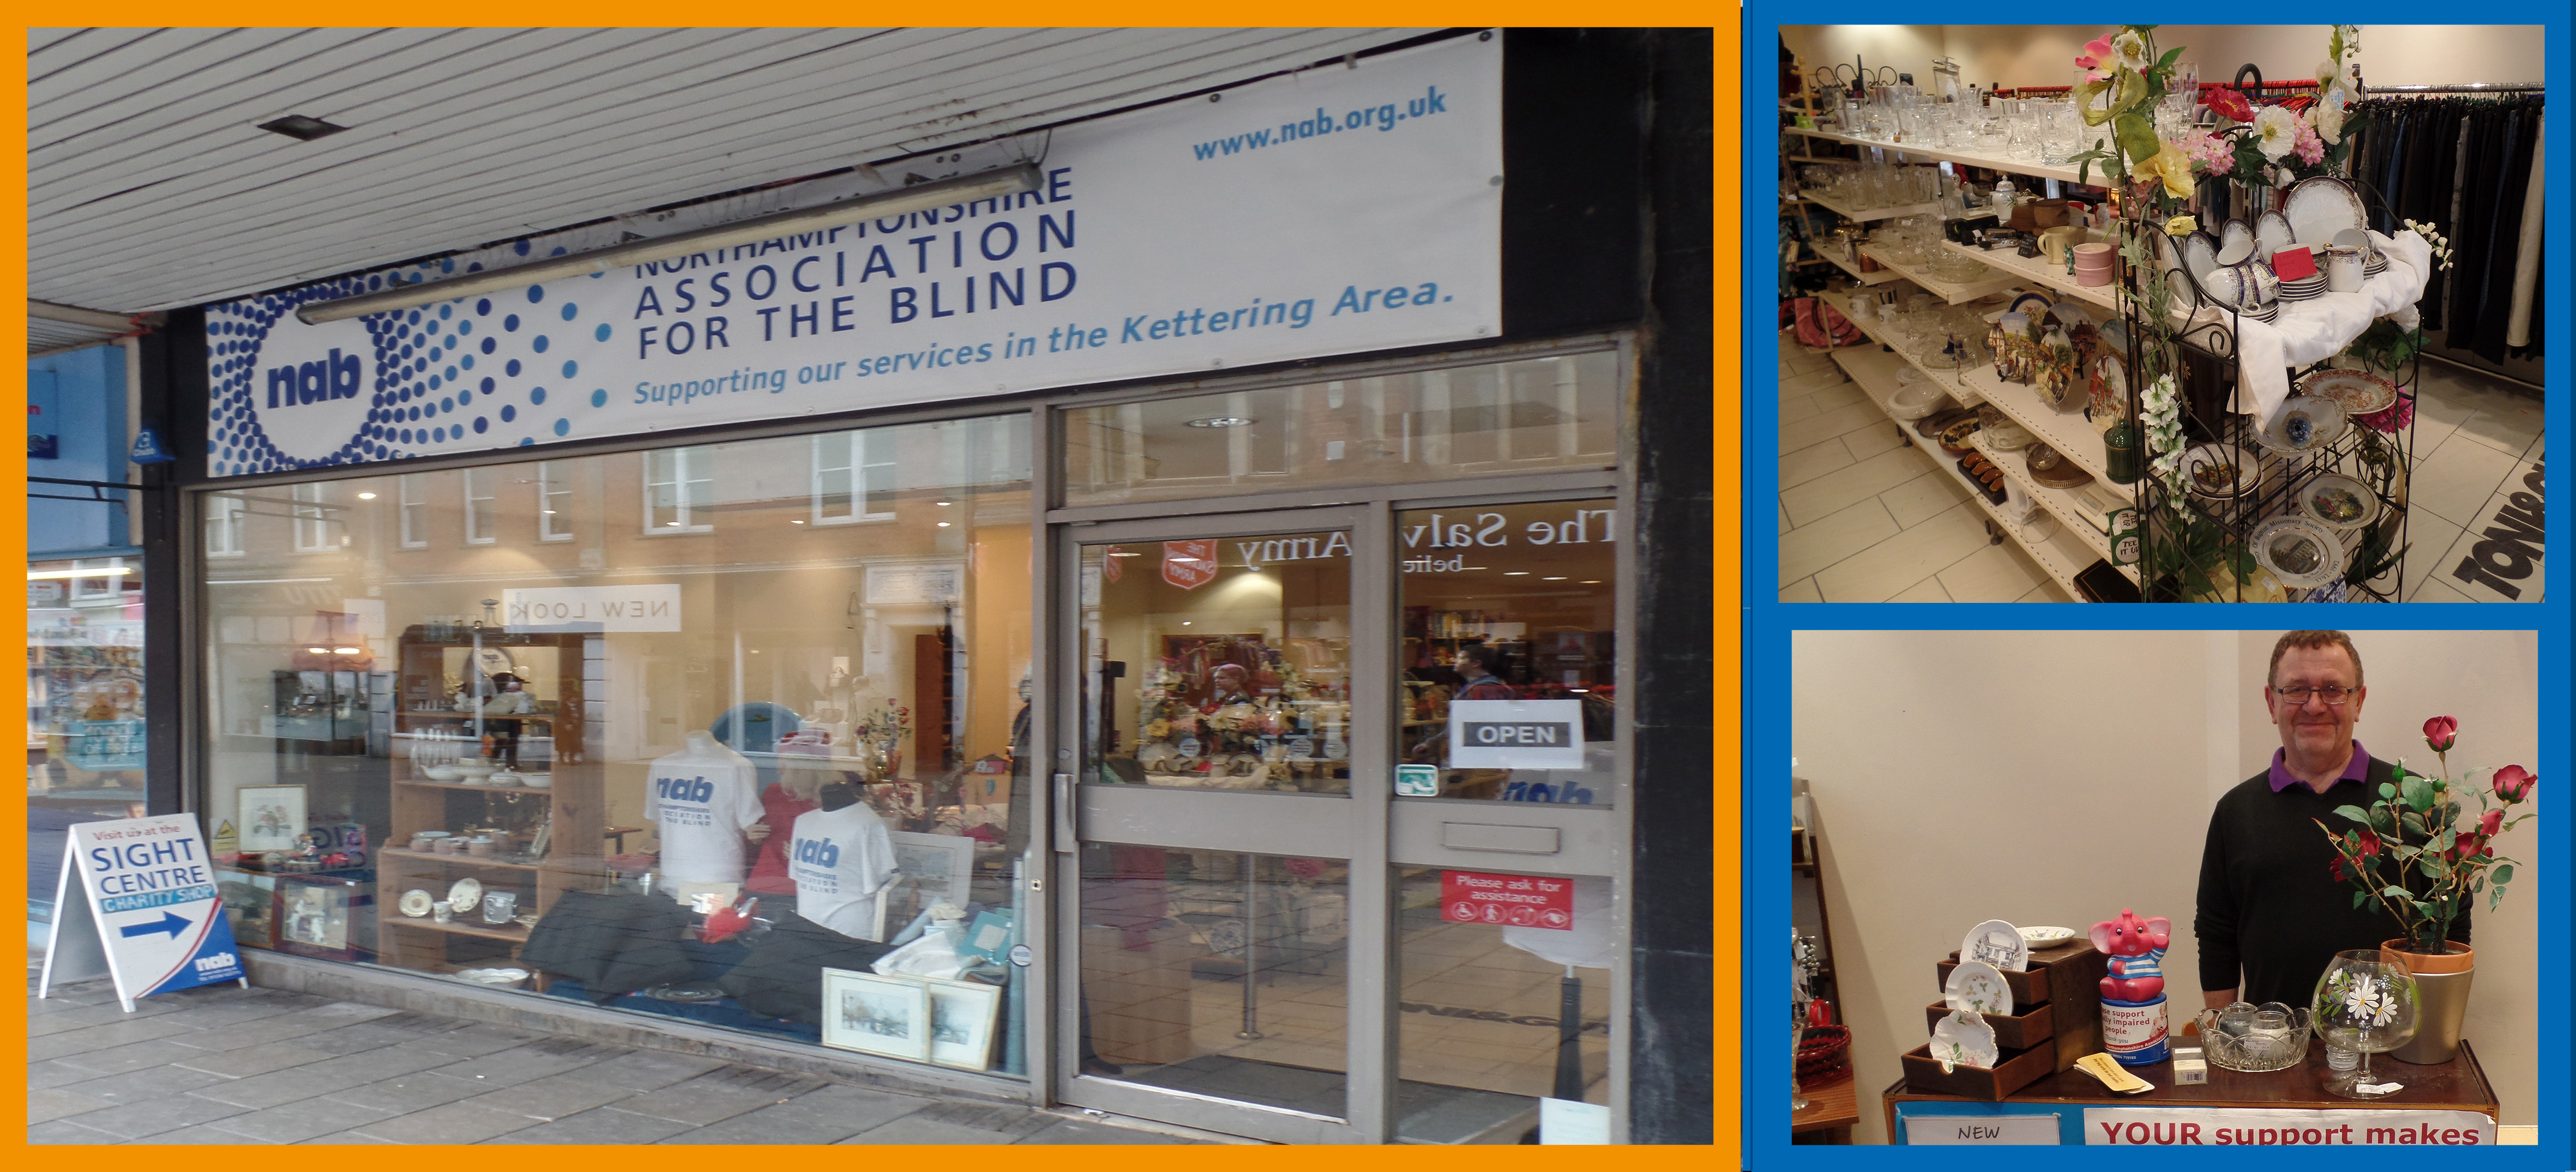 Charity Shops Northamptonshire Association For The Blind